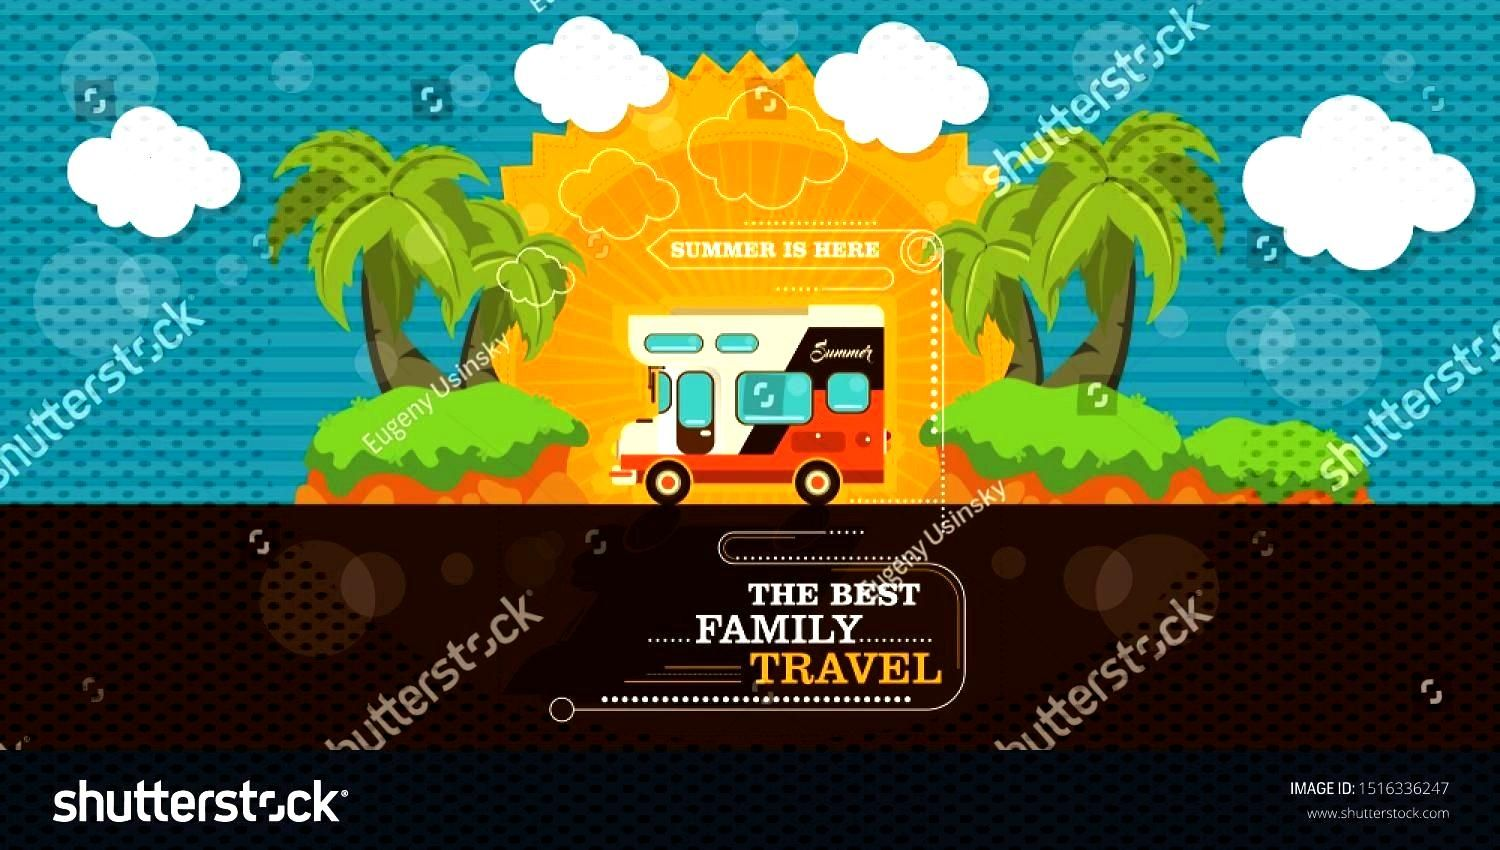 of driving campers rv on road in the trees. Family summer vacation travel, holiday trip concept ,Ve